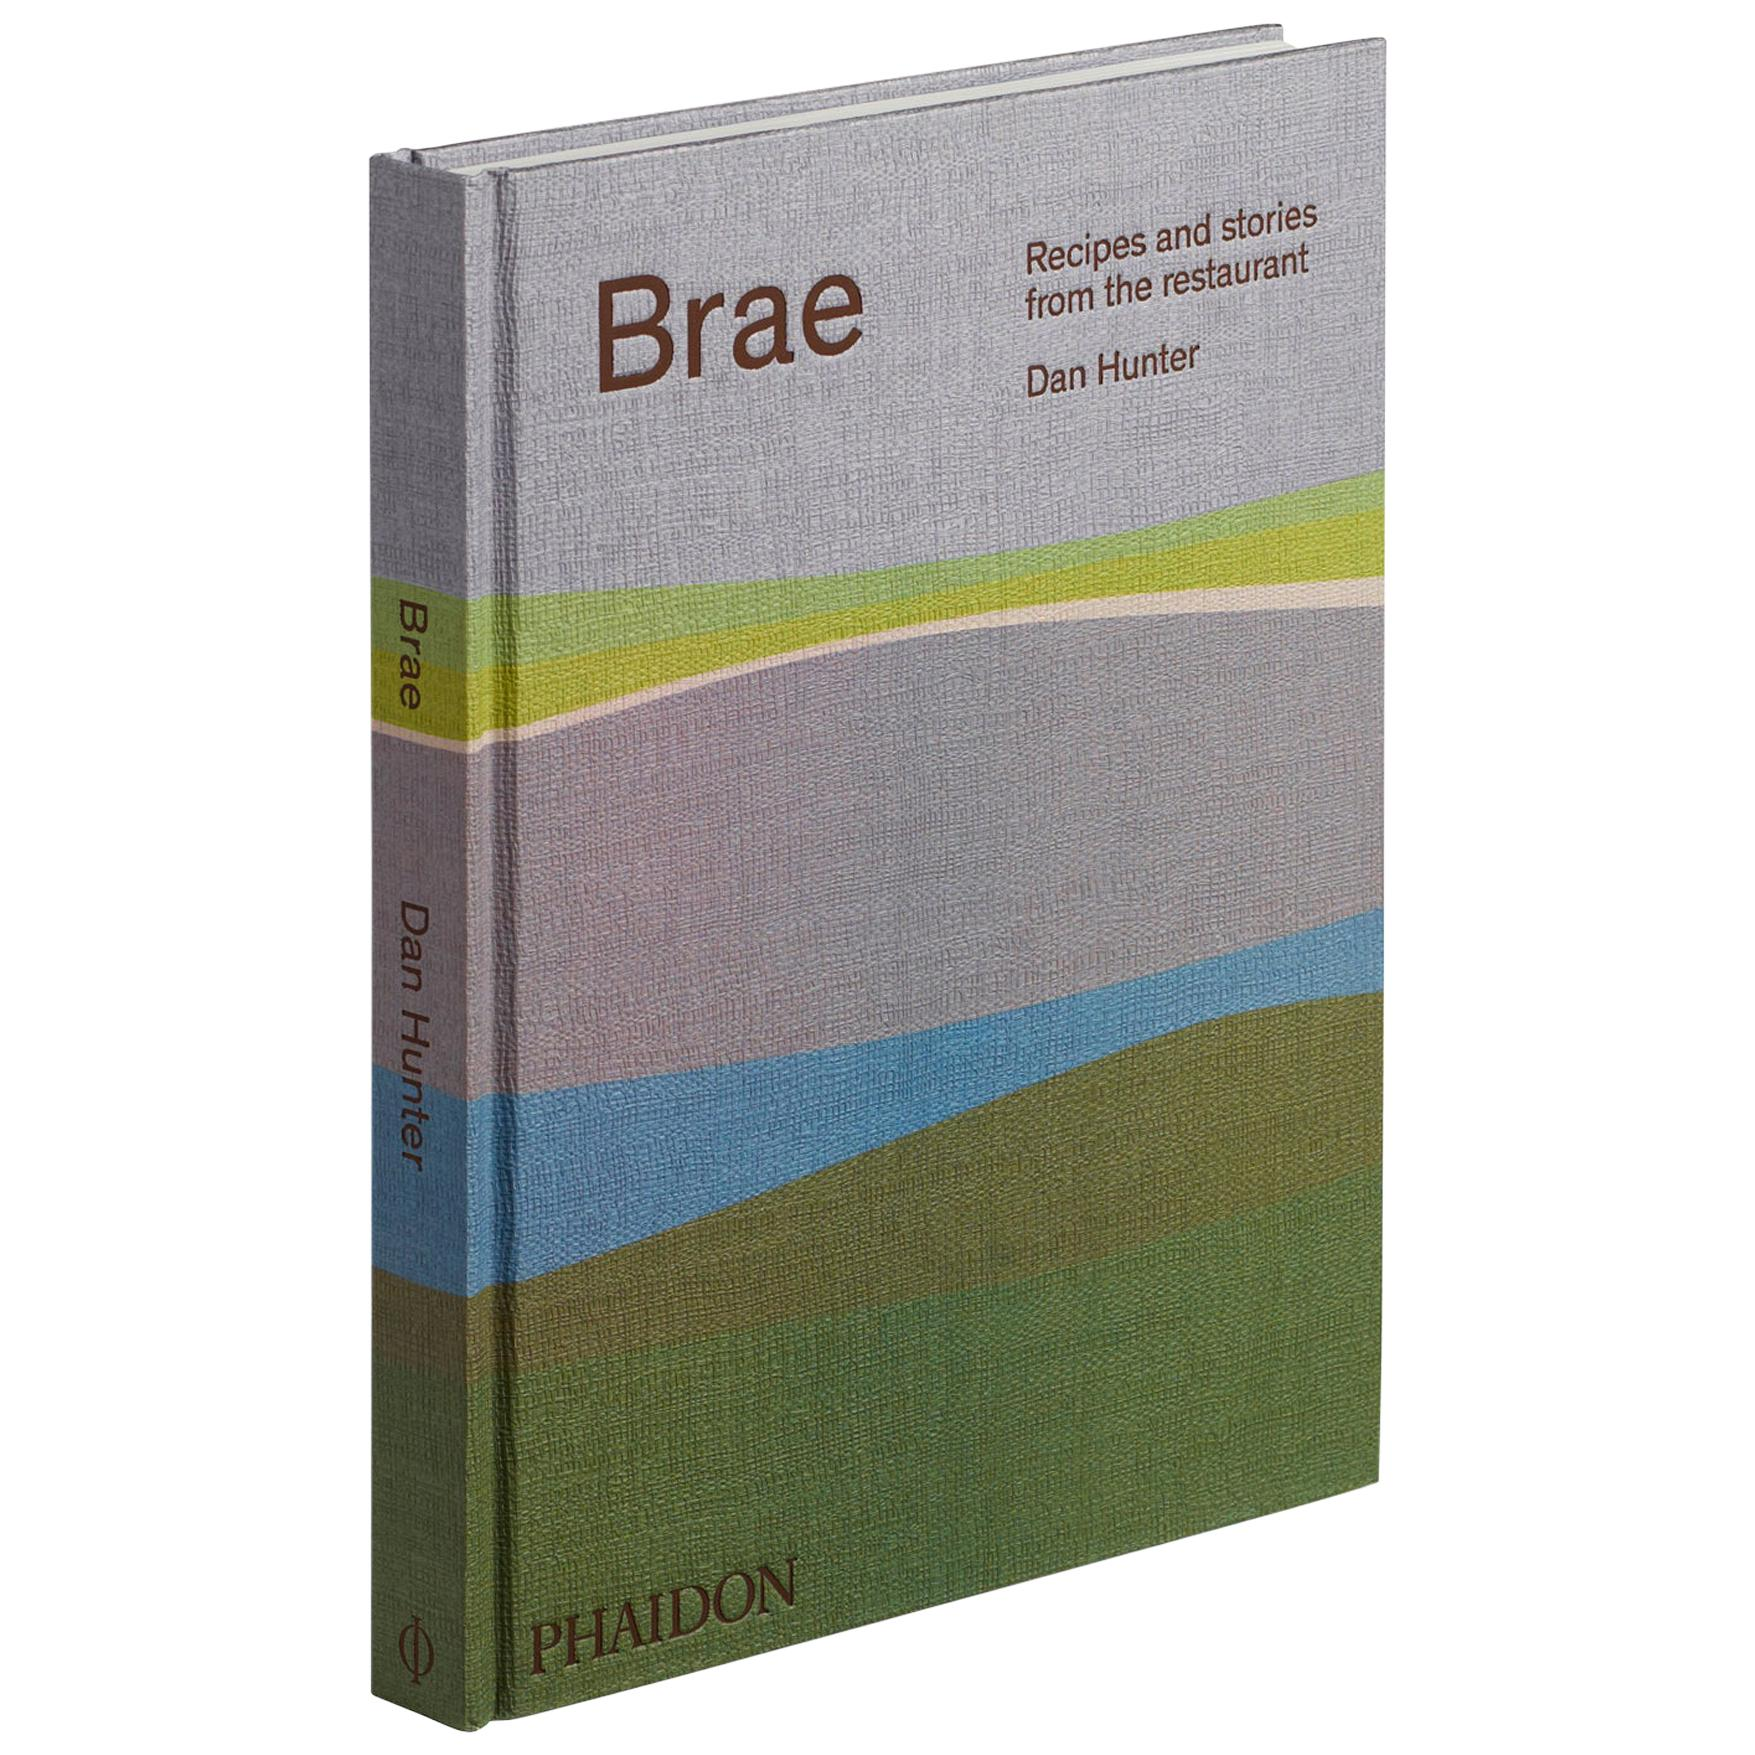 Brae - Recipes and stories from the restaurant